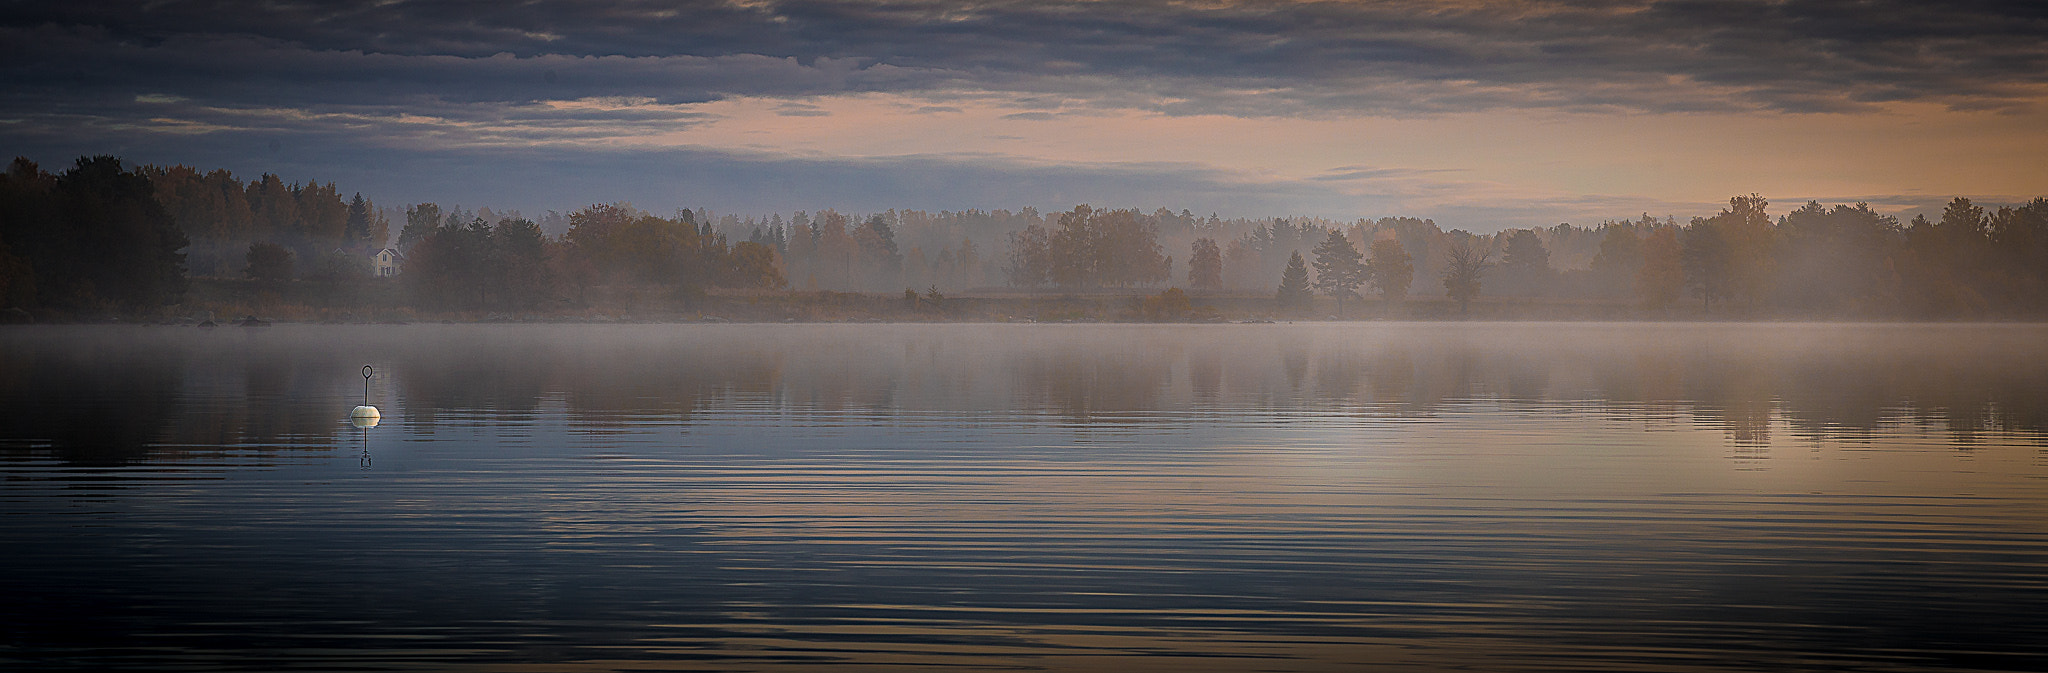 Photograph Calm waters by Mats Jakobsson on 500px